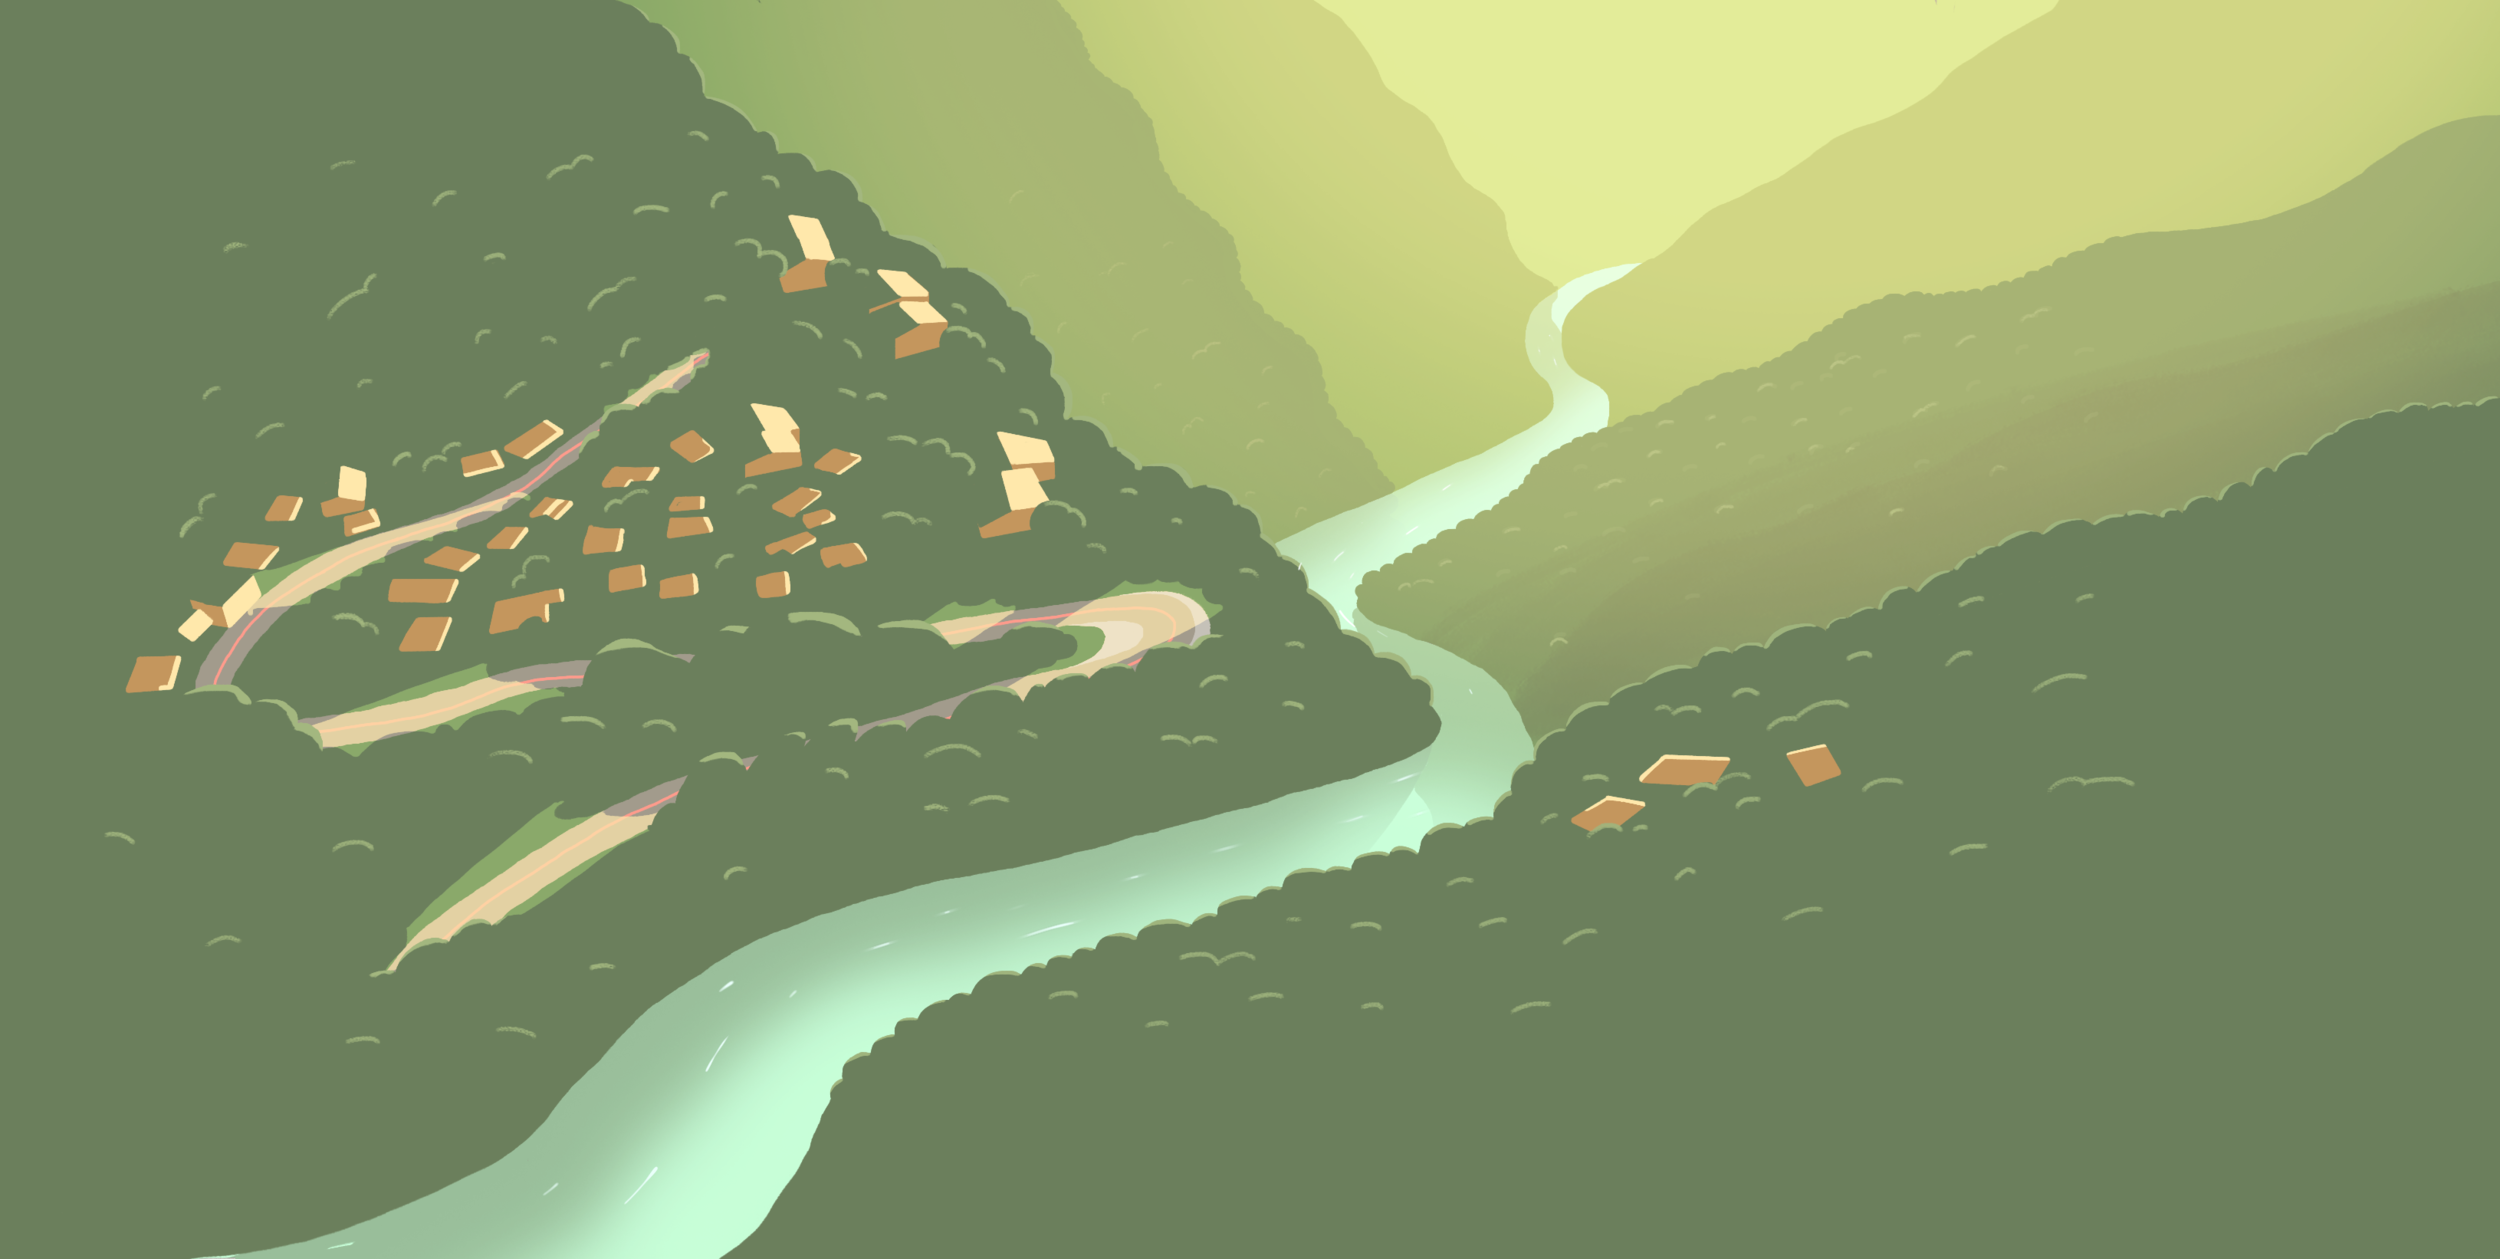 The scene's backdrop. Inspired by the Google Earth image I showed earlier. I illustrated a lot more here than I needed, but this stuff is just too much fun.